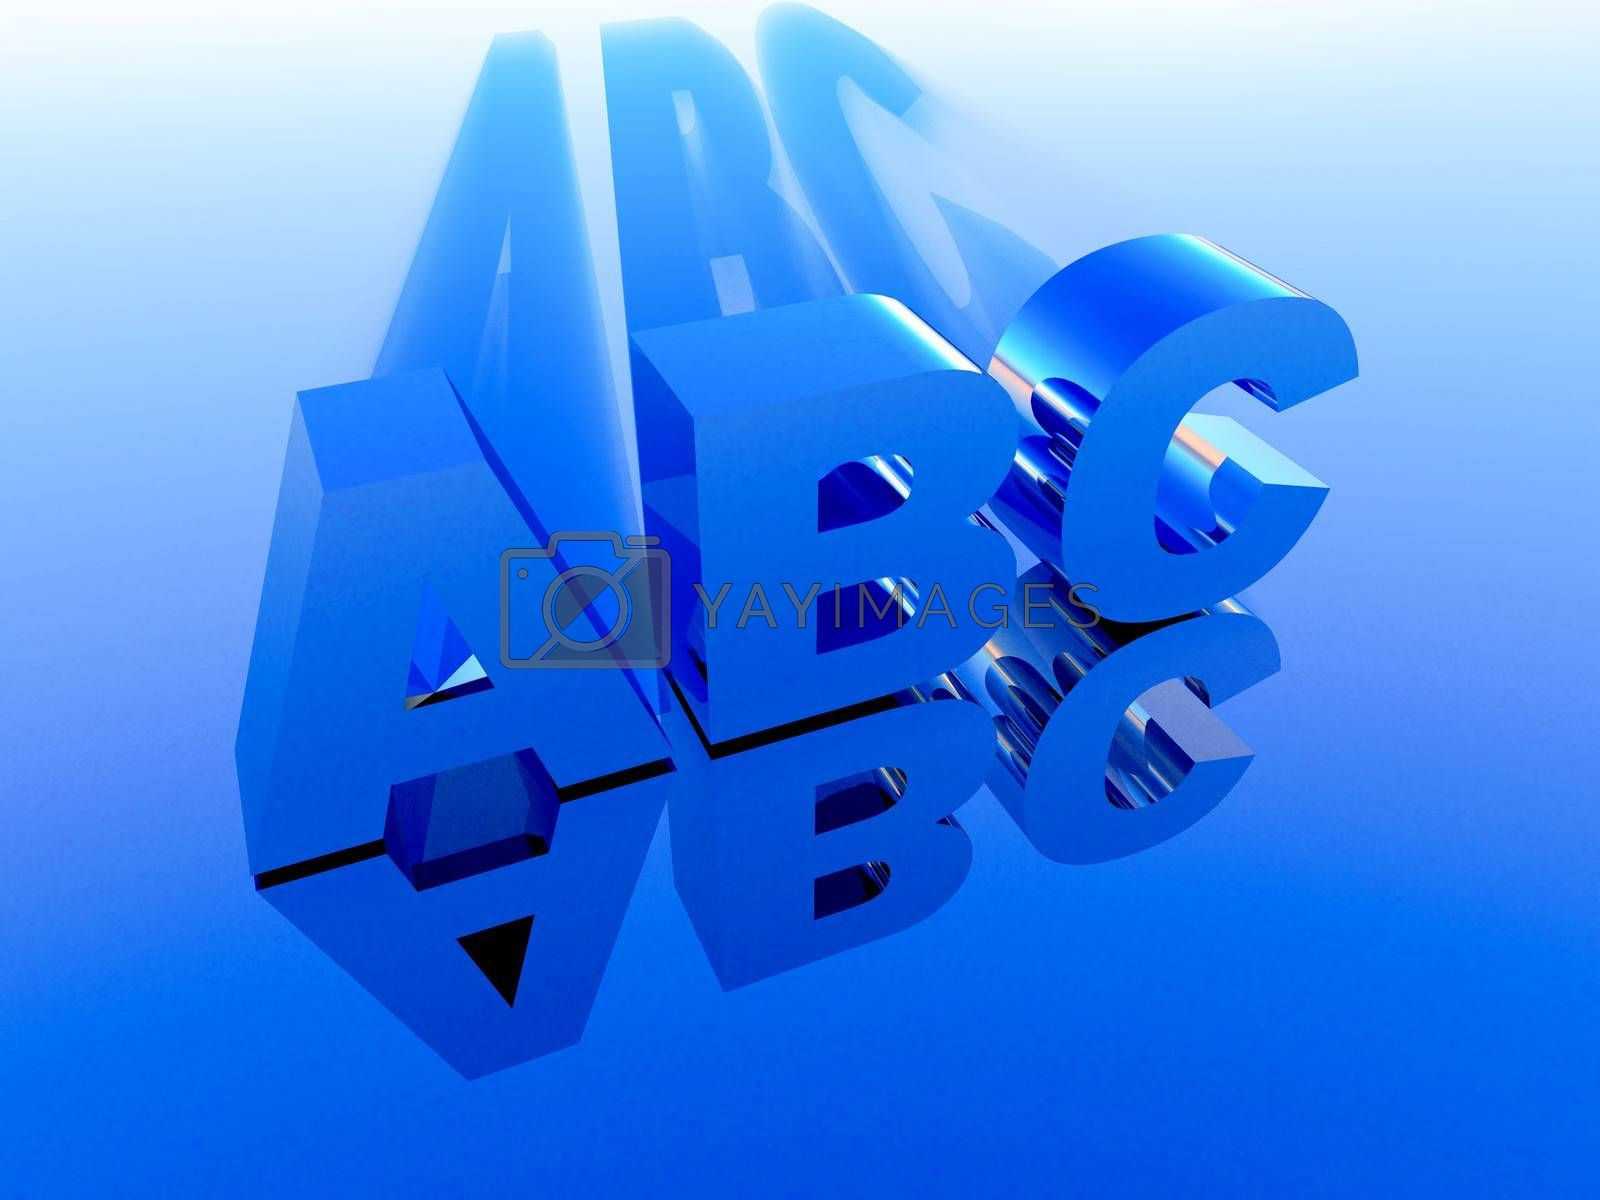 the letters ABC in 3 d